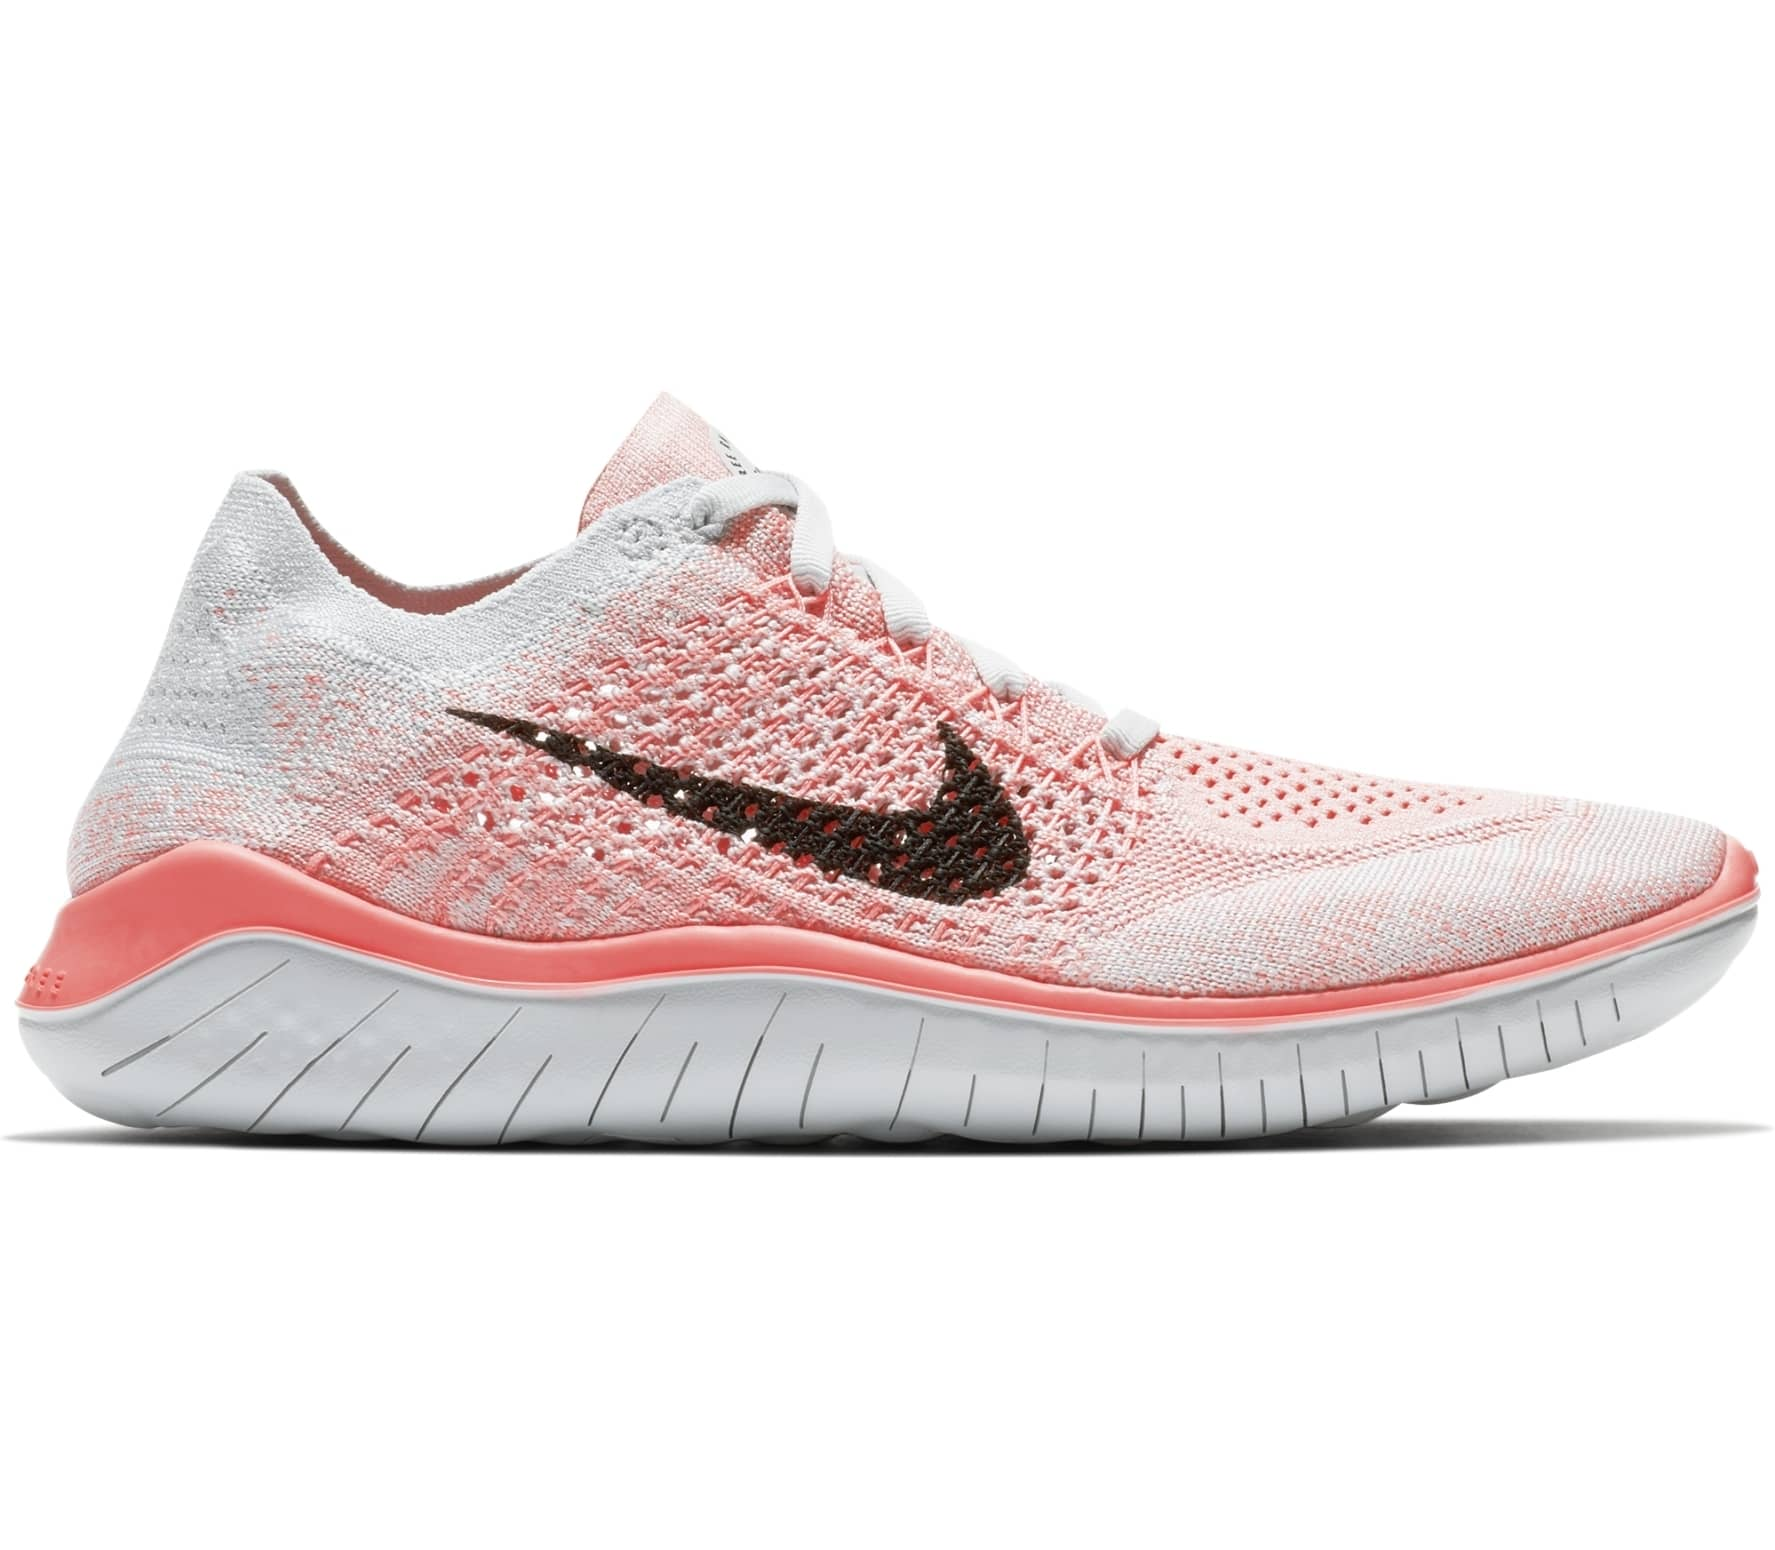 san francisco a8292 9bf99 Nike - Free RN Flyknit 2018 womens running shoes (pinkwhite)